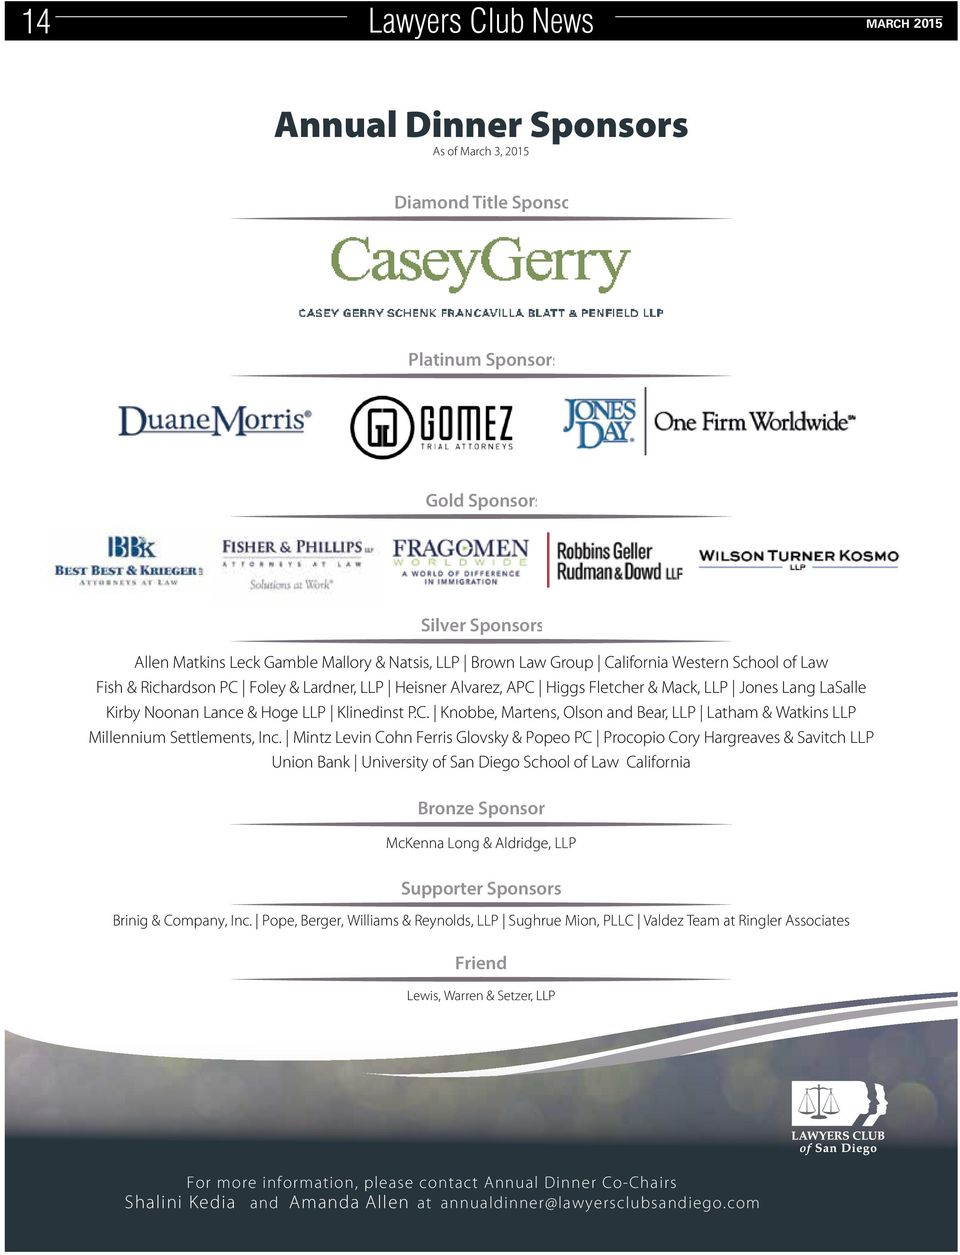 Mintz Levin Cohn Ferris Glovsky & Popeo PC Procopio Cory Hargreaves & Savitch LLP Union Bank University of San Diego School of Law California Bronze Sponsor McKenna Long & Aldridge, LLP Supporter